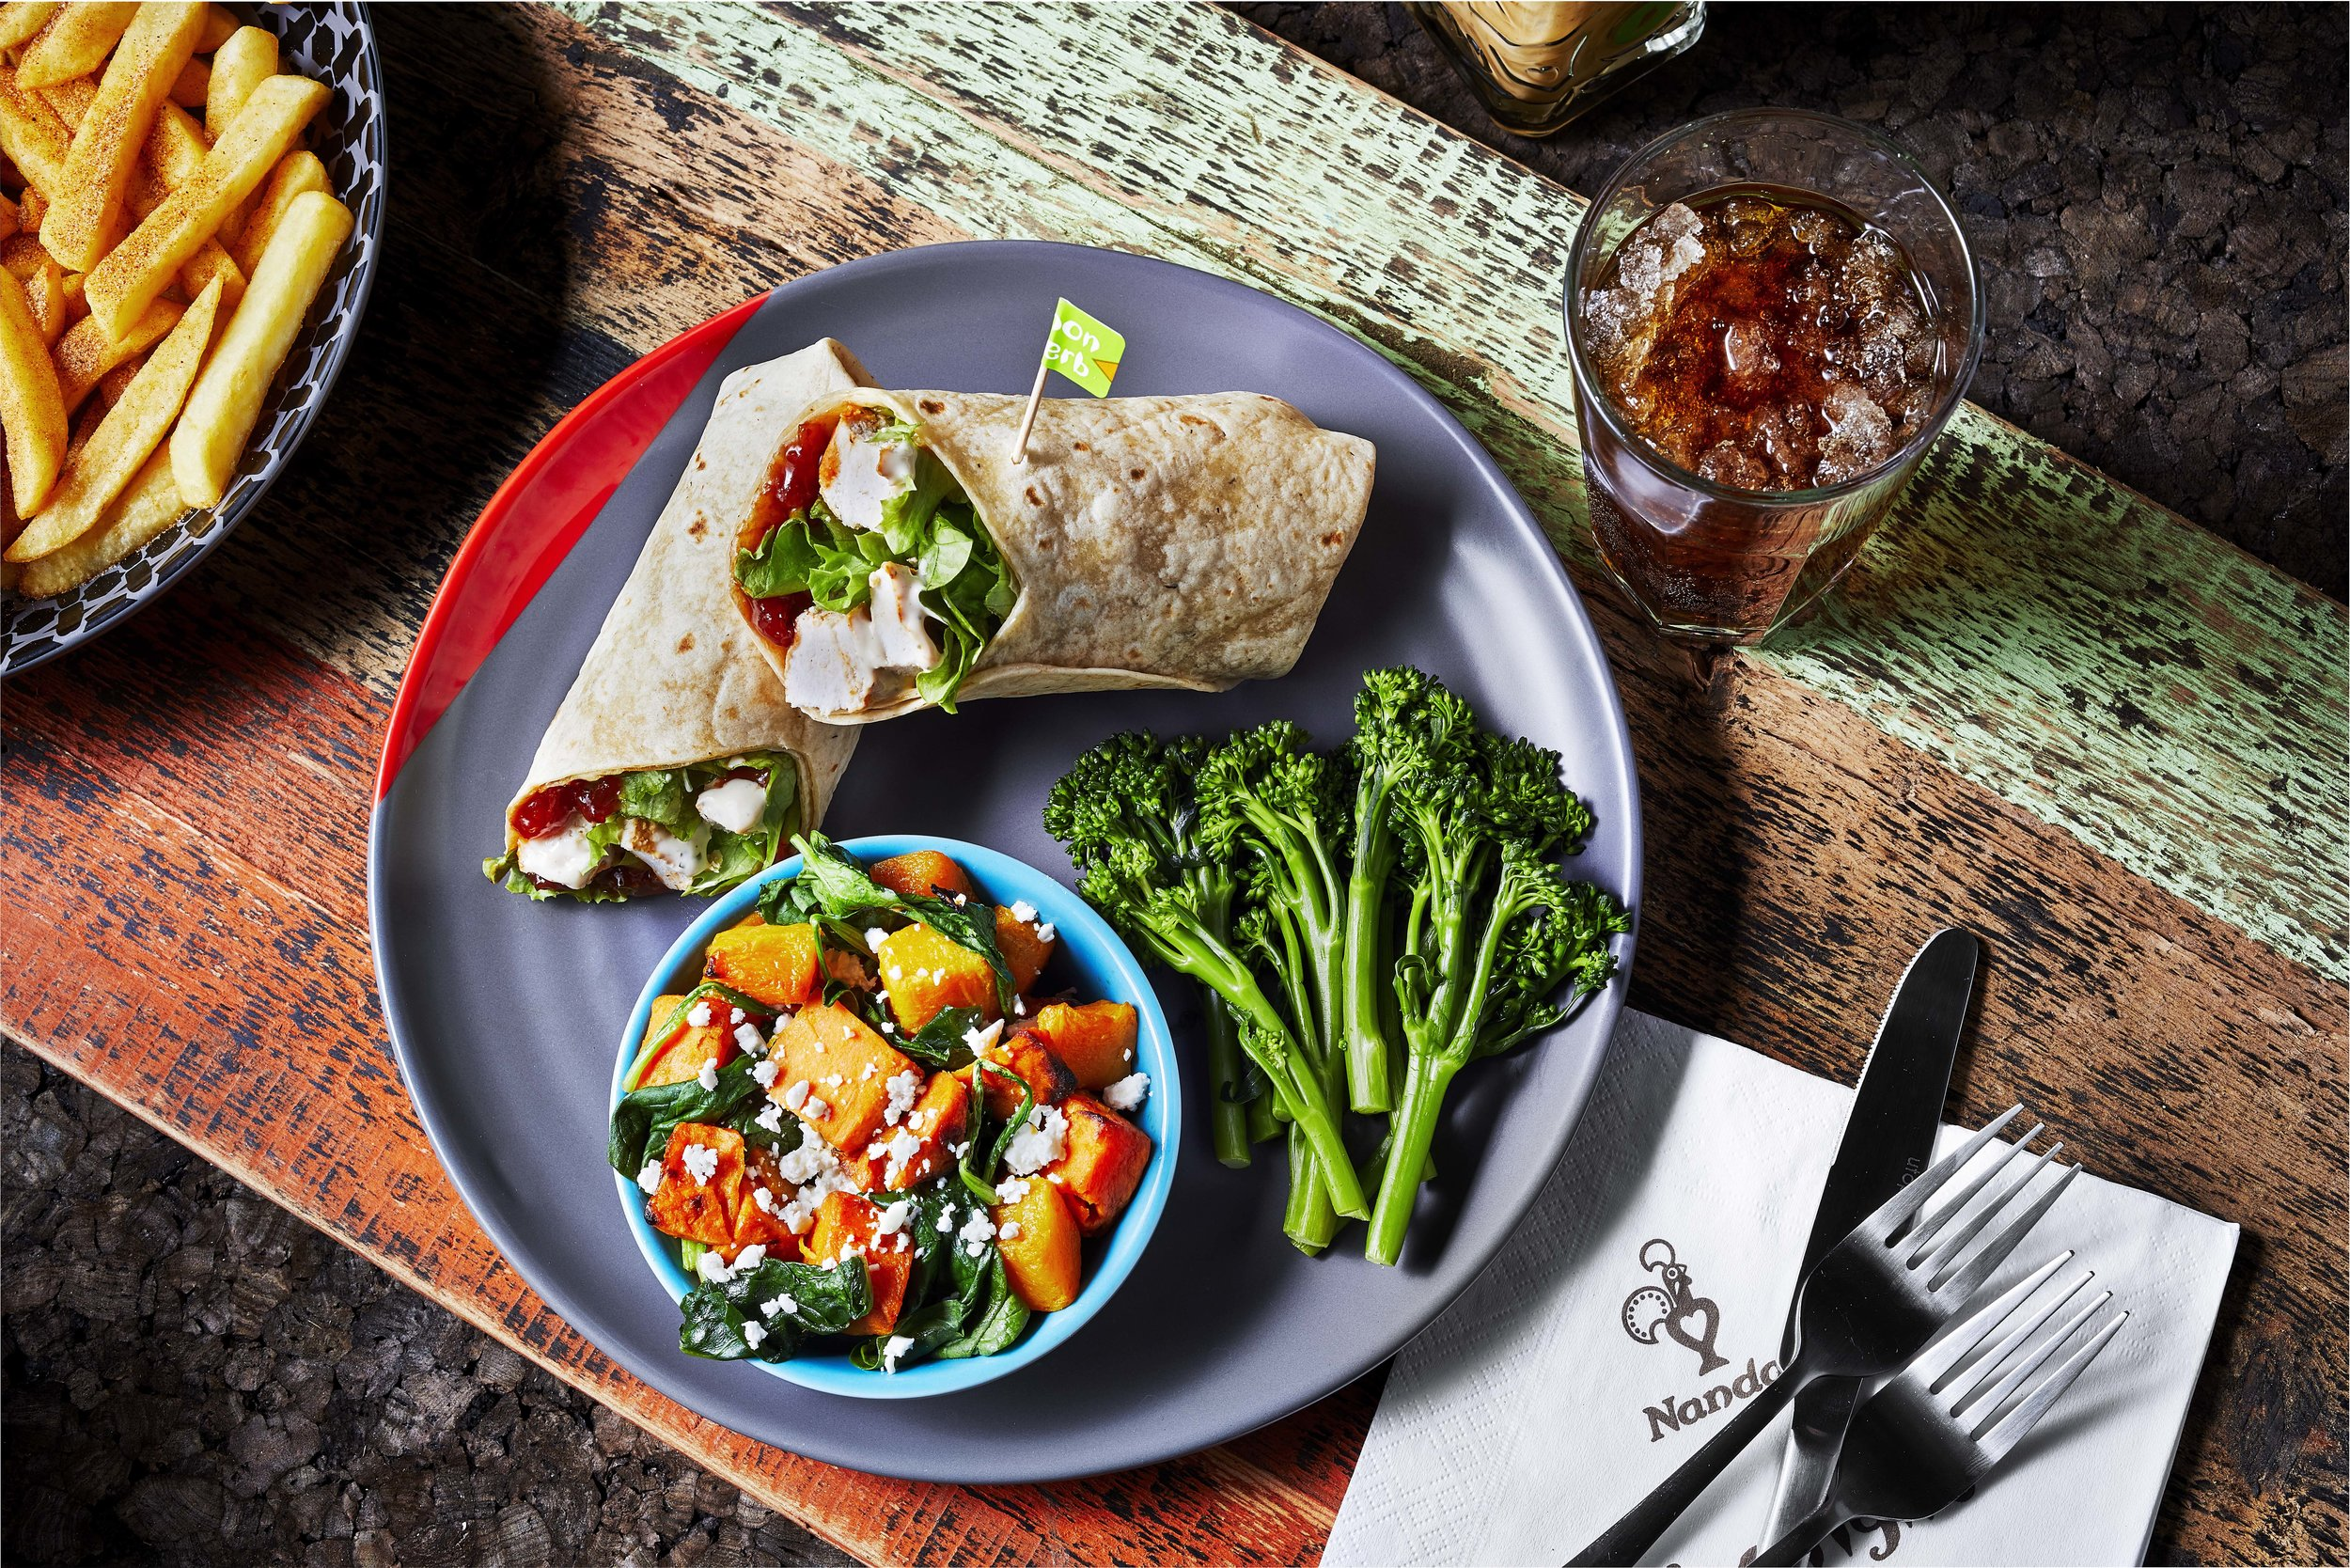 Nando's Chicken Wrap with Roasted Sweet Potato & Butternut Squash and Long Stem Broccoli.jpg